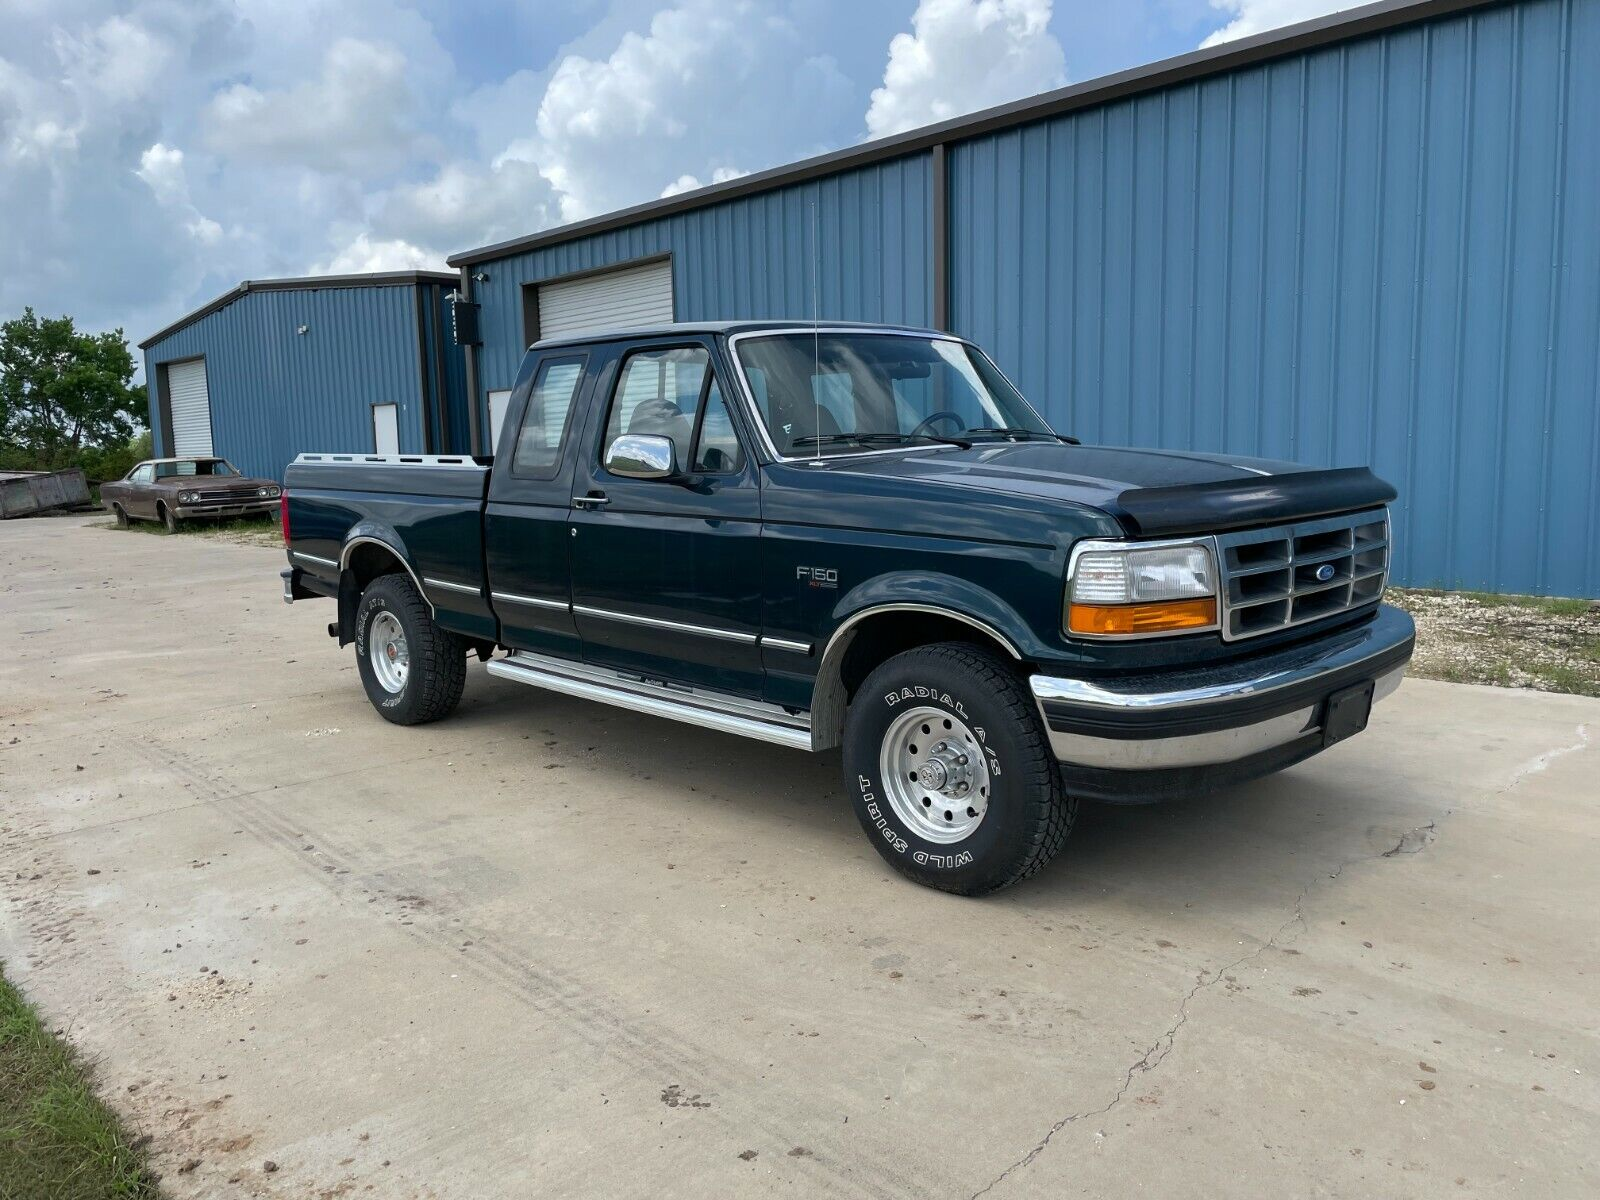 1994 Ford F-150 XLT 4X4 Extended Cab 5.8 351 Low Miles 1 Owner Clean